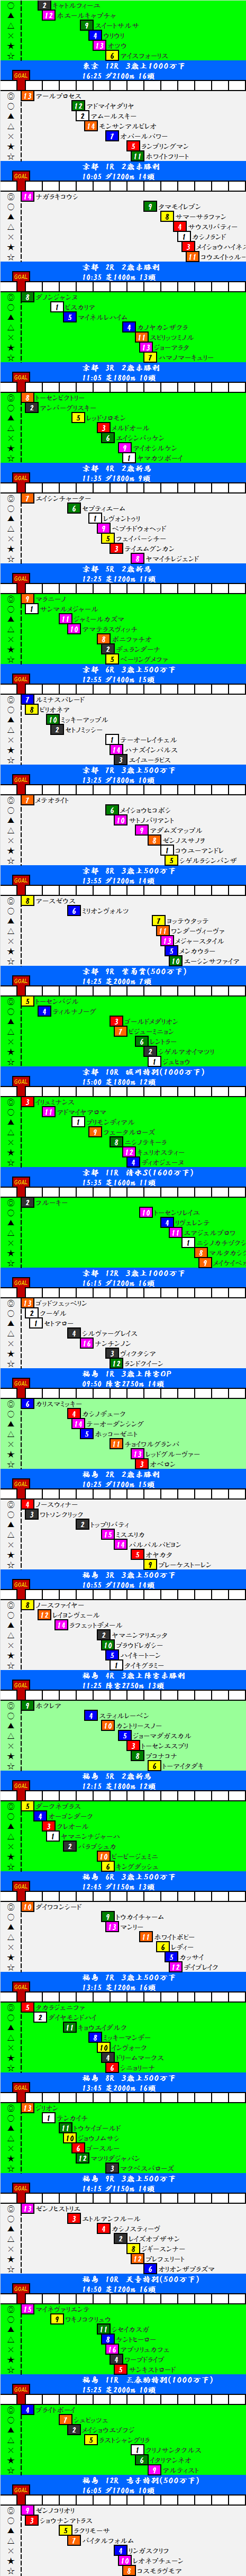 2014101802.png